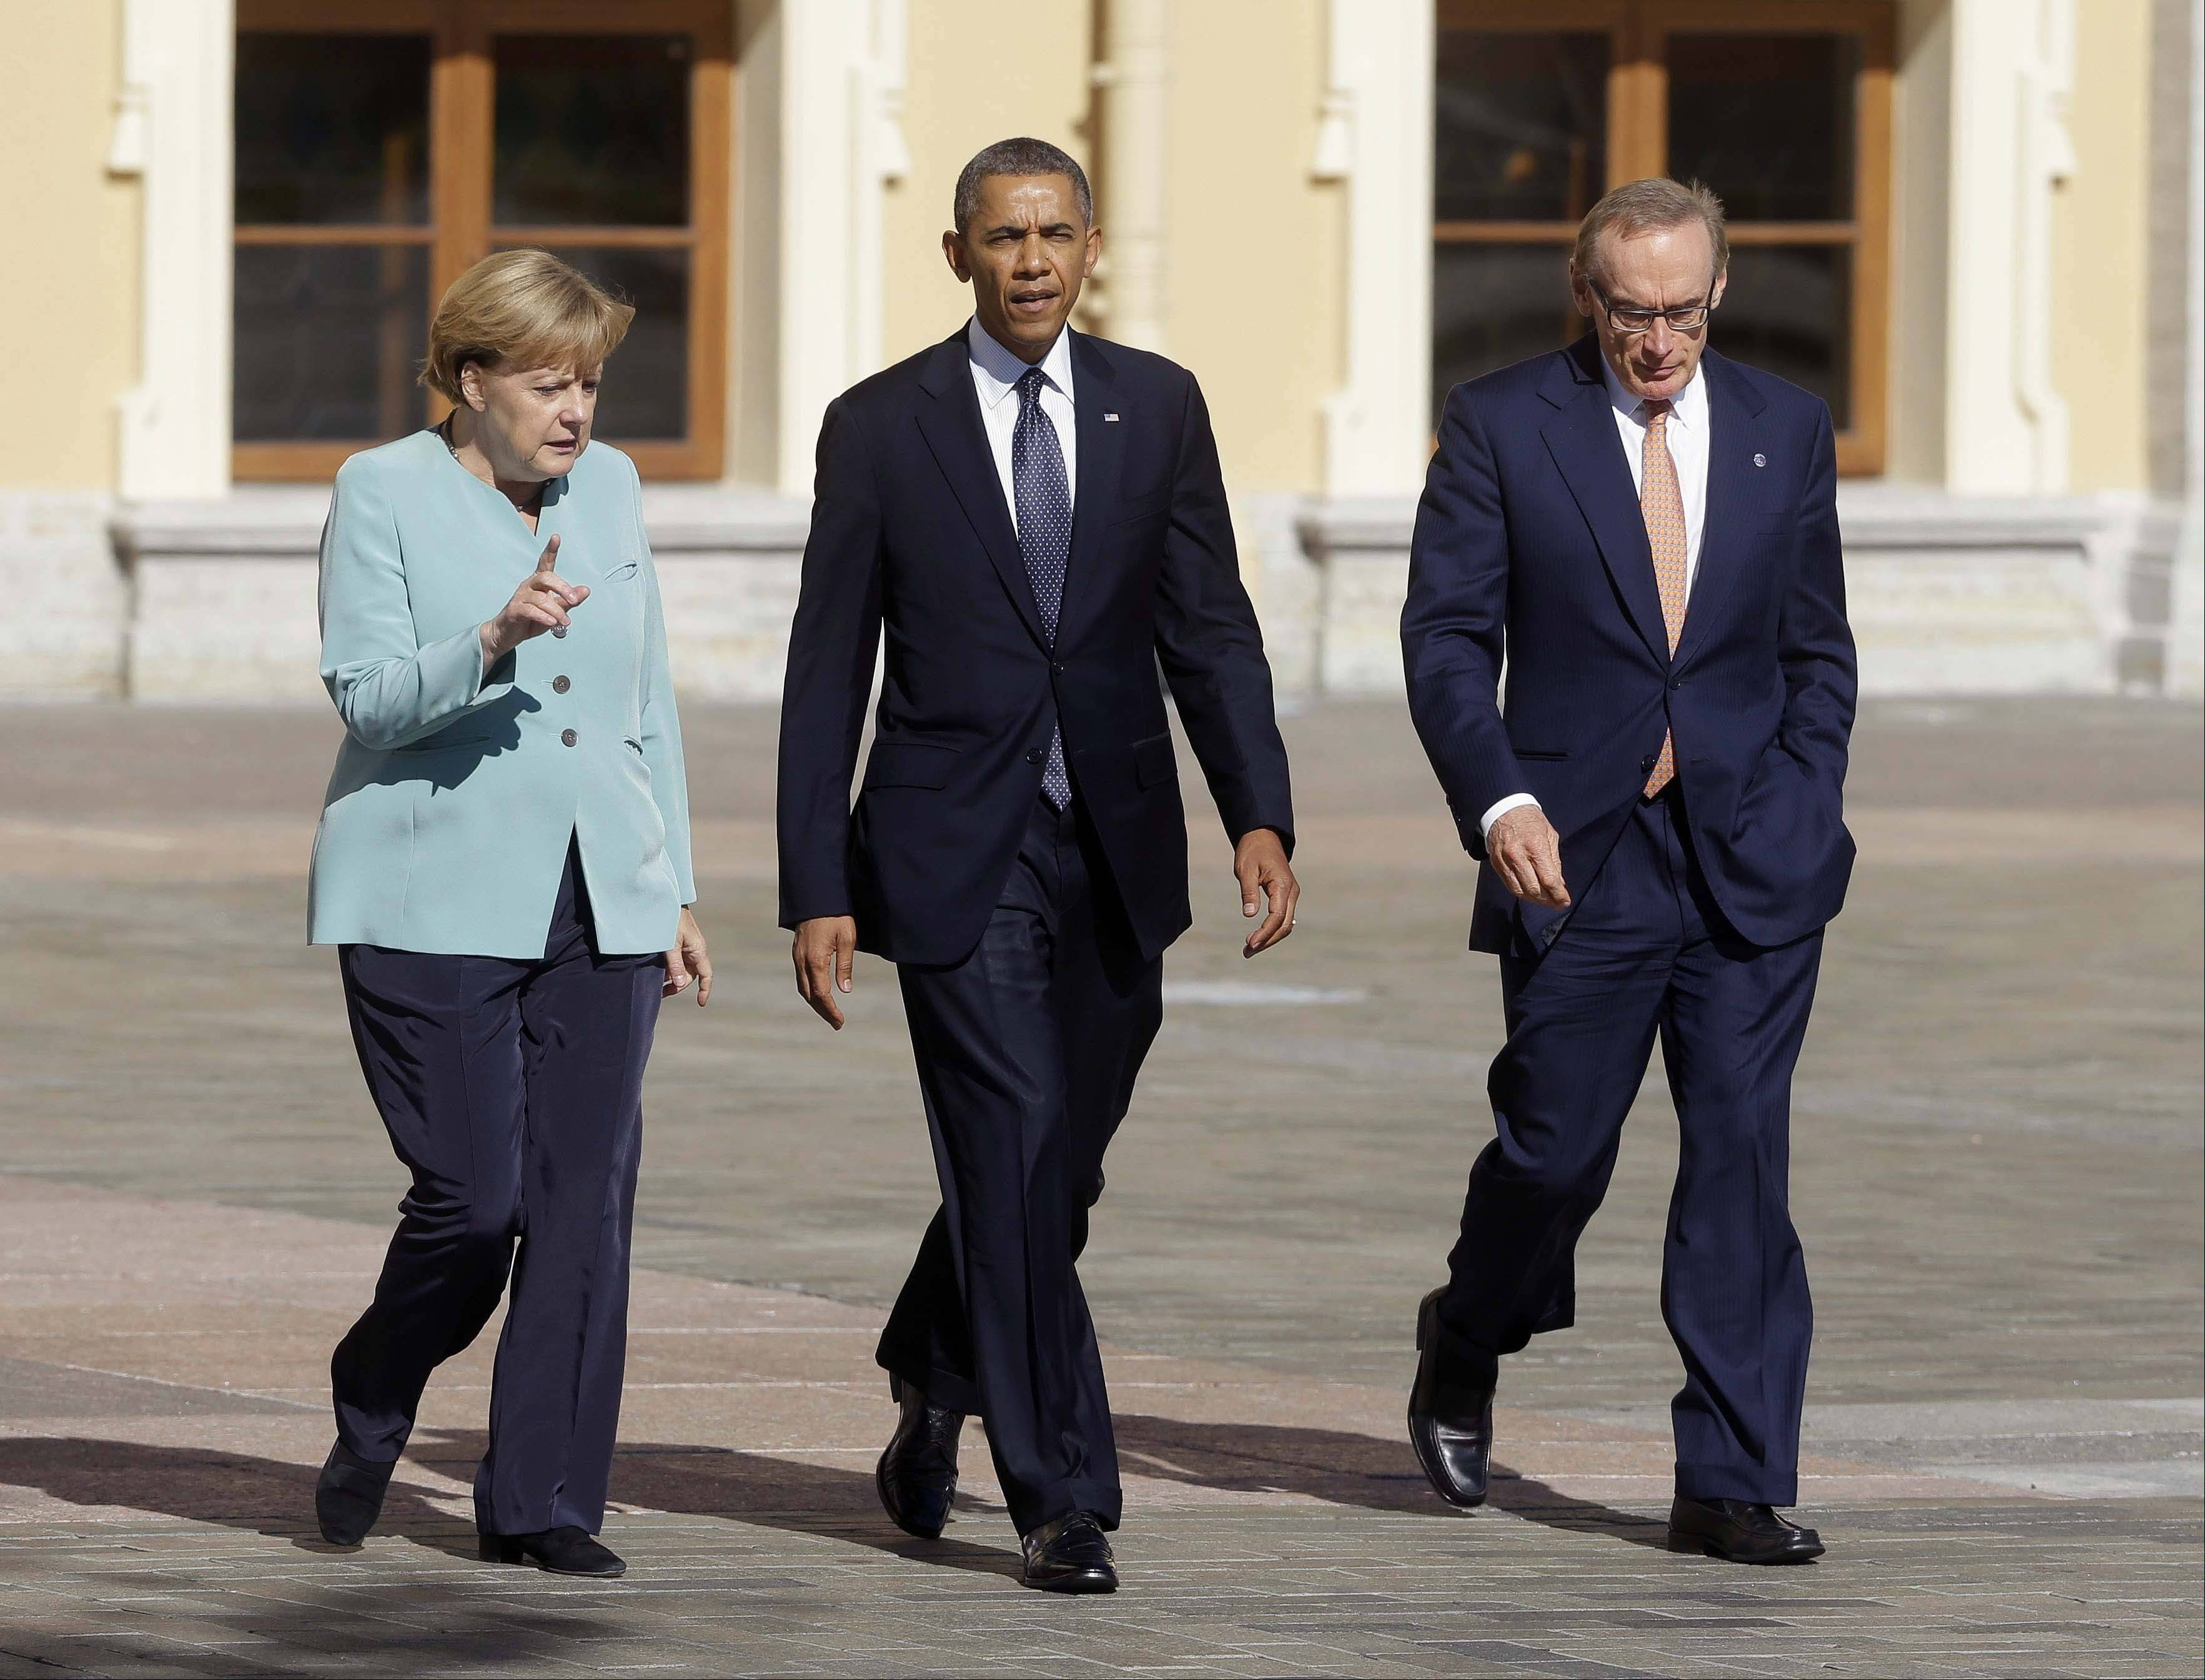 U.S. President Barack Obama walks with Germany�s Chancellor Angela Merkel, left, and Australian Foreign Minister Bob Carr prior to the group photo at the G-20 summit at the Konstantin Palace in St. Petersburg, Russia.